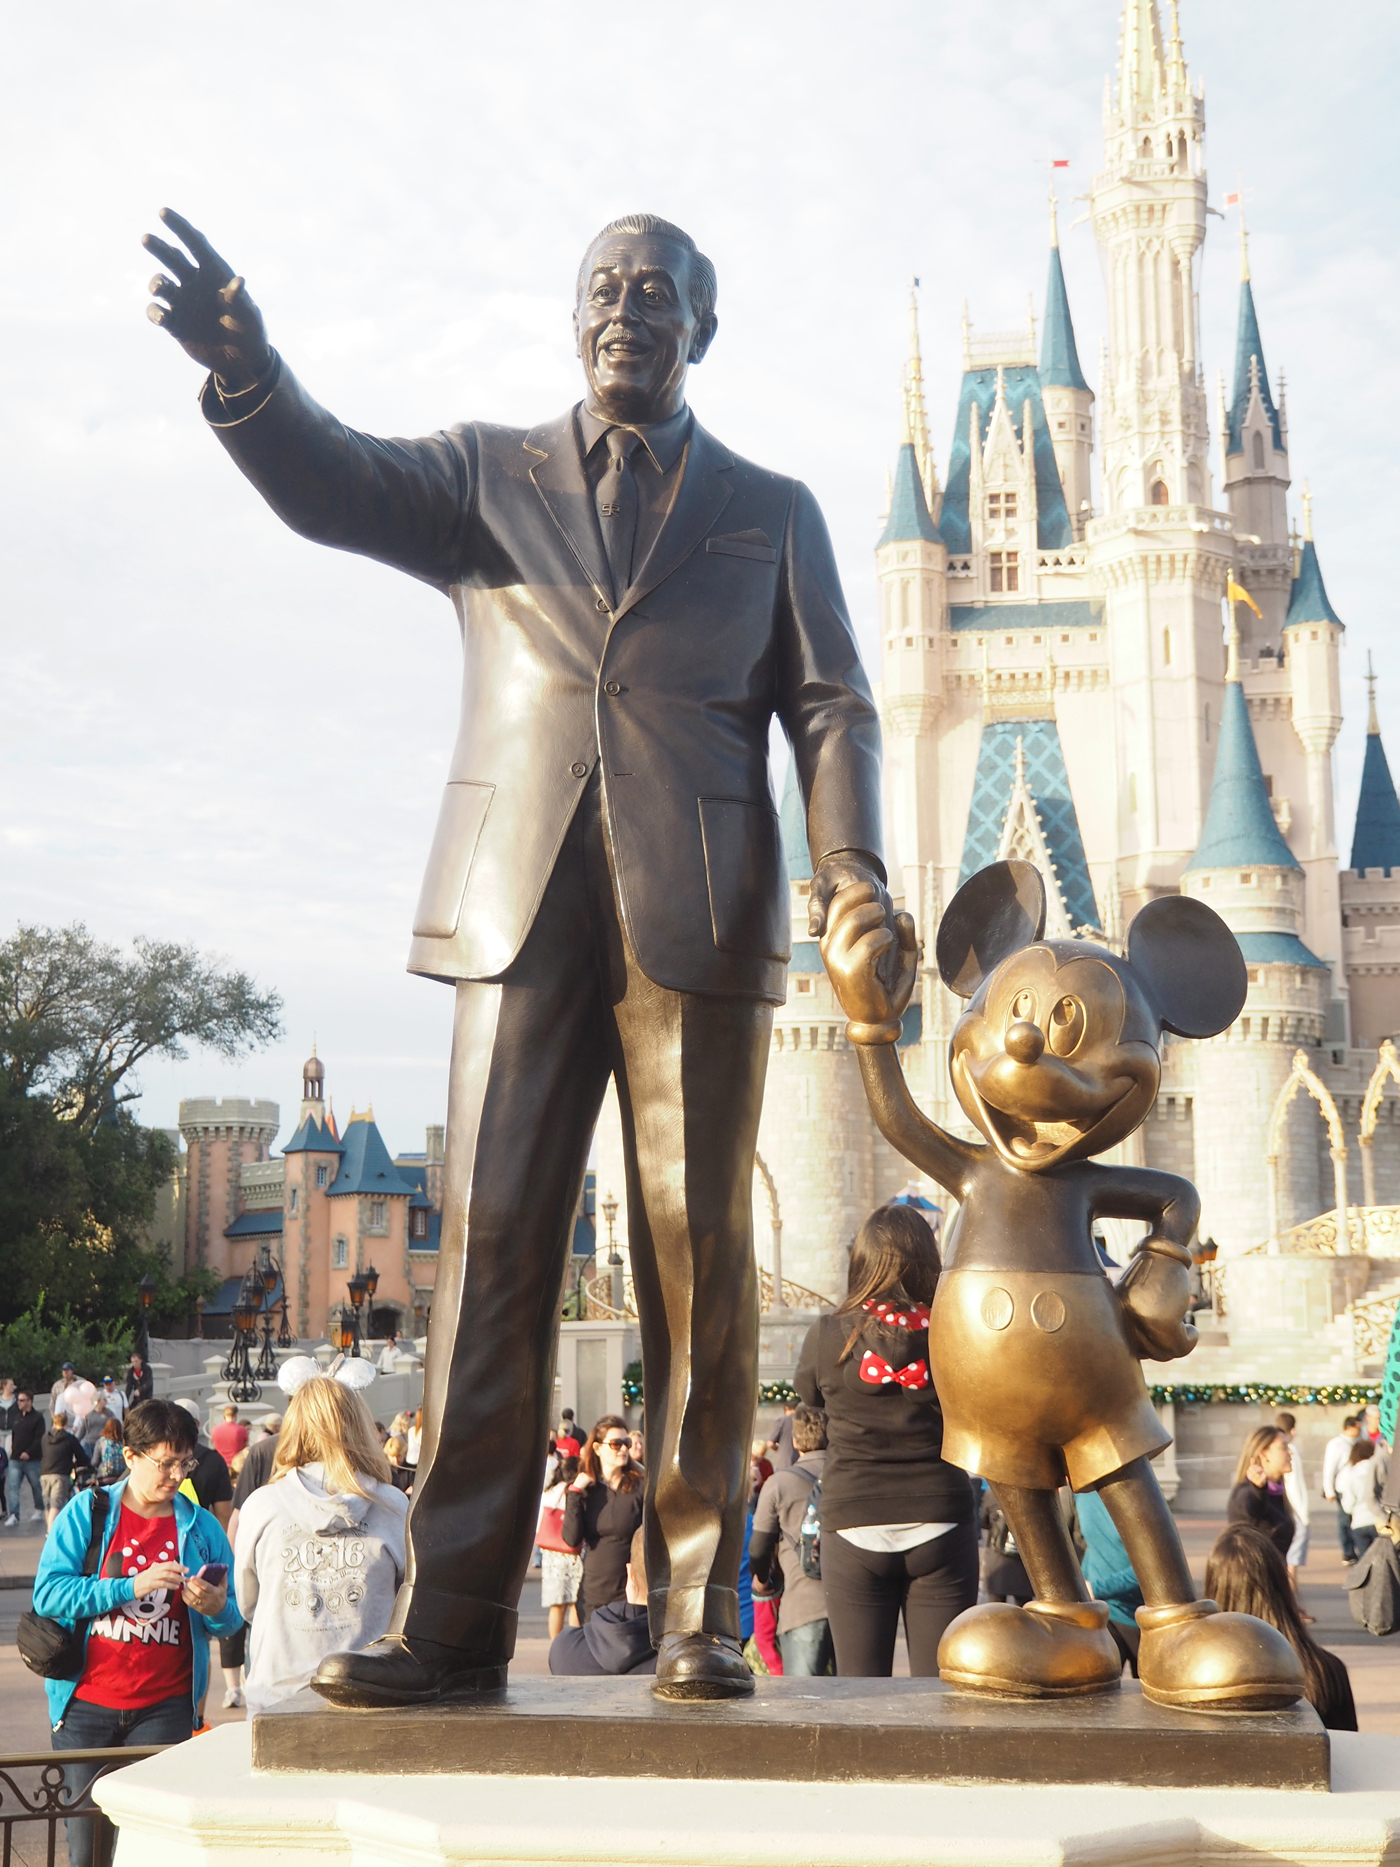 WALT DISNEY WORLD MAGIC KINDGOM ORLANDO